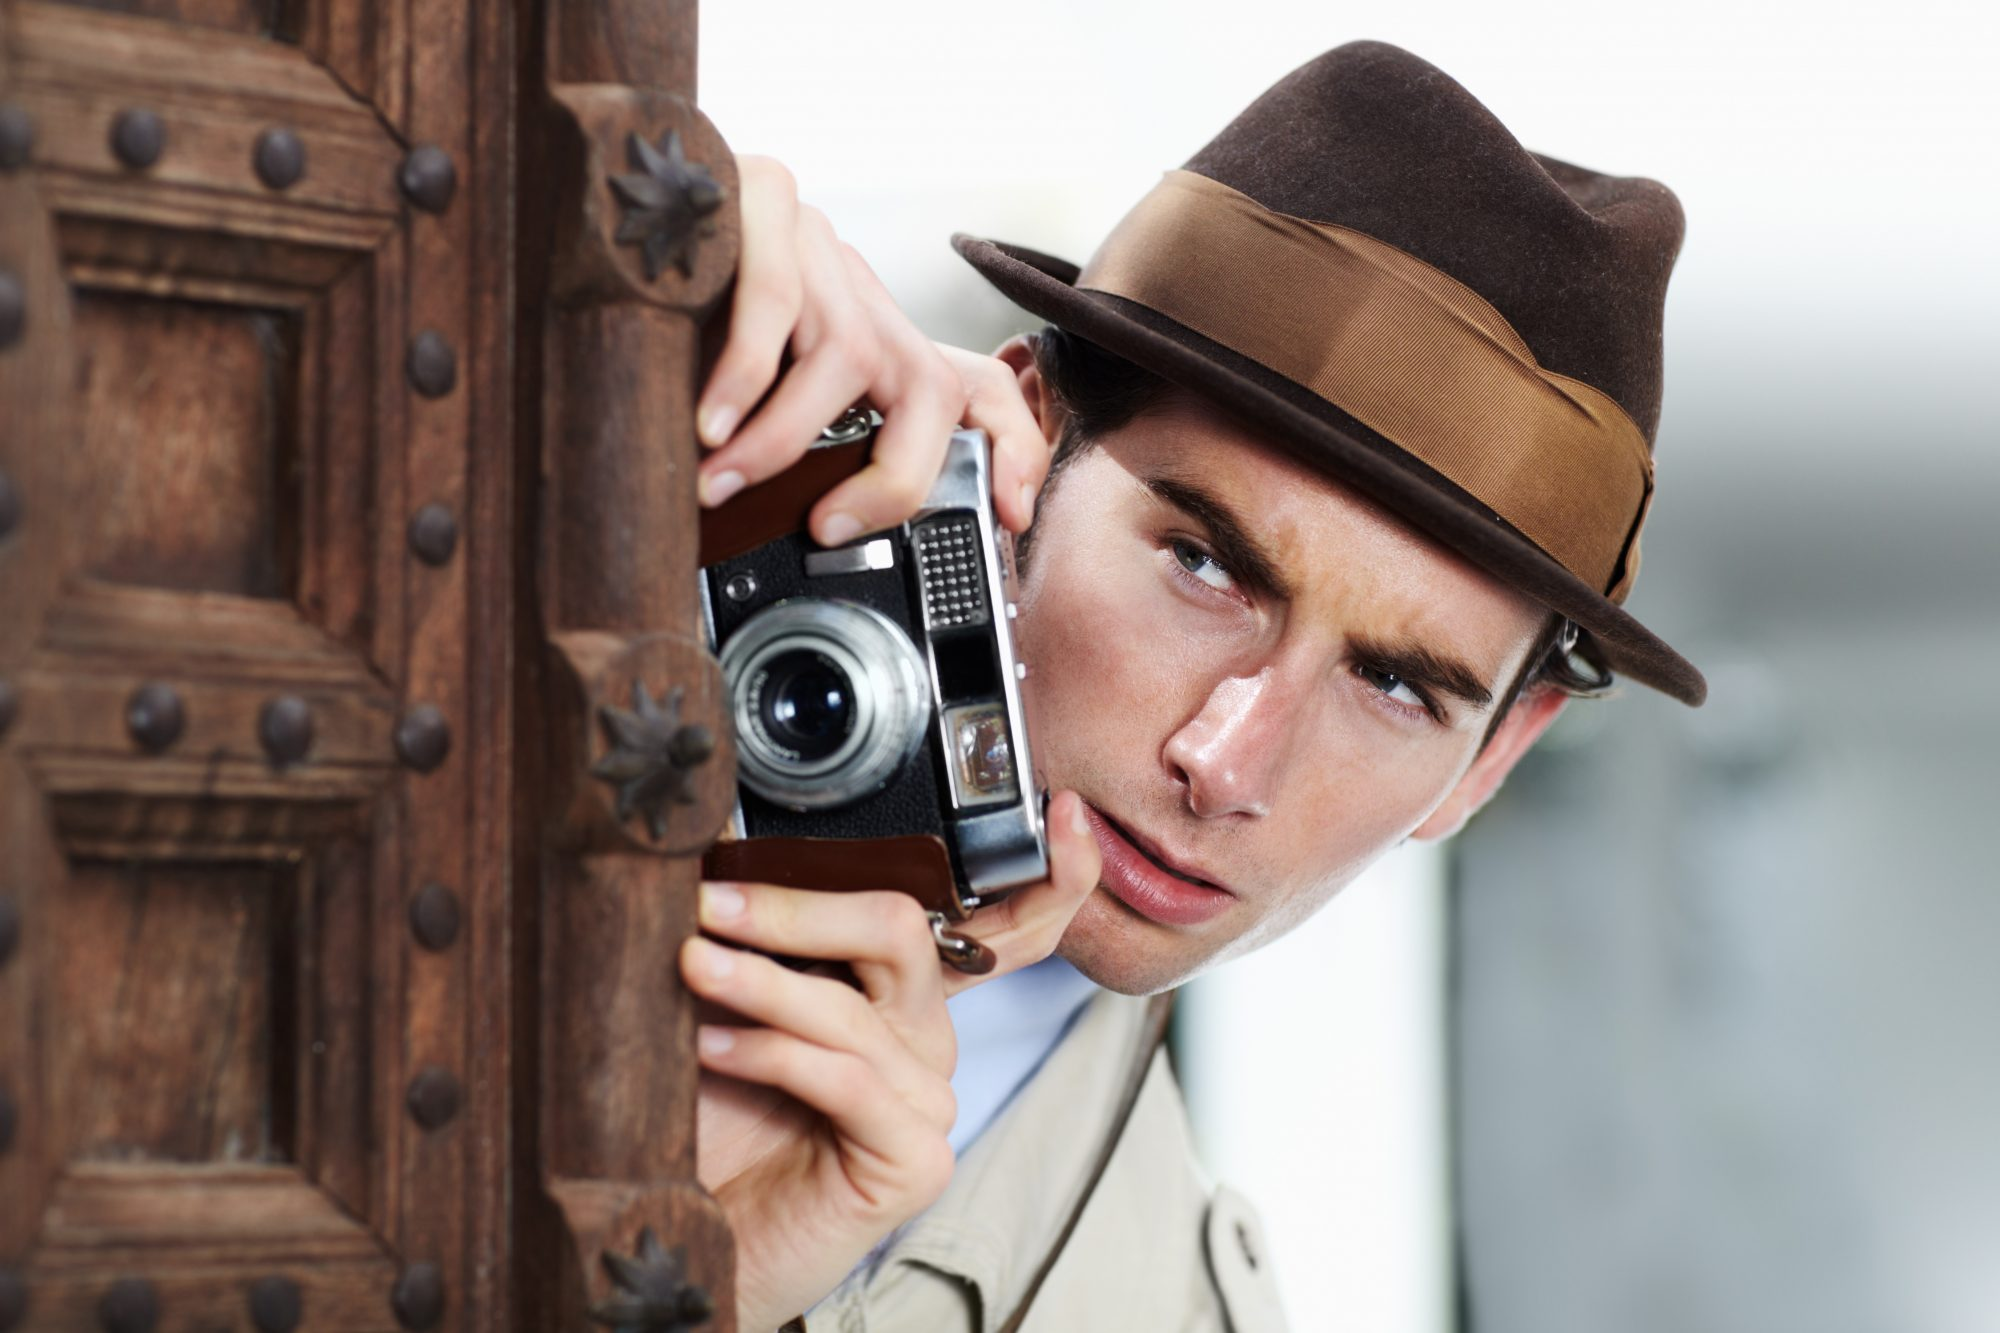 Man taking picture with vintage camera